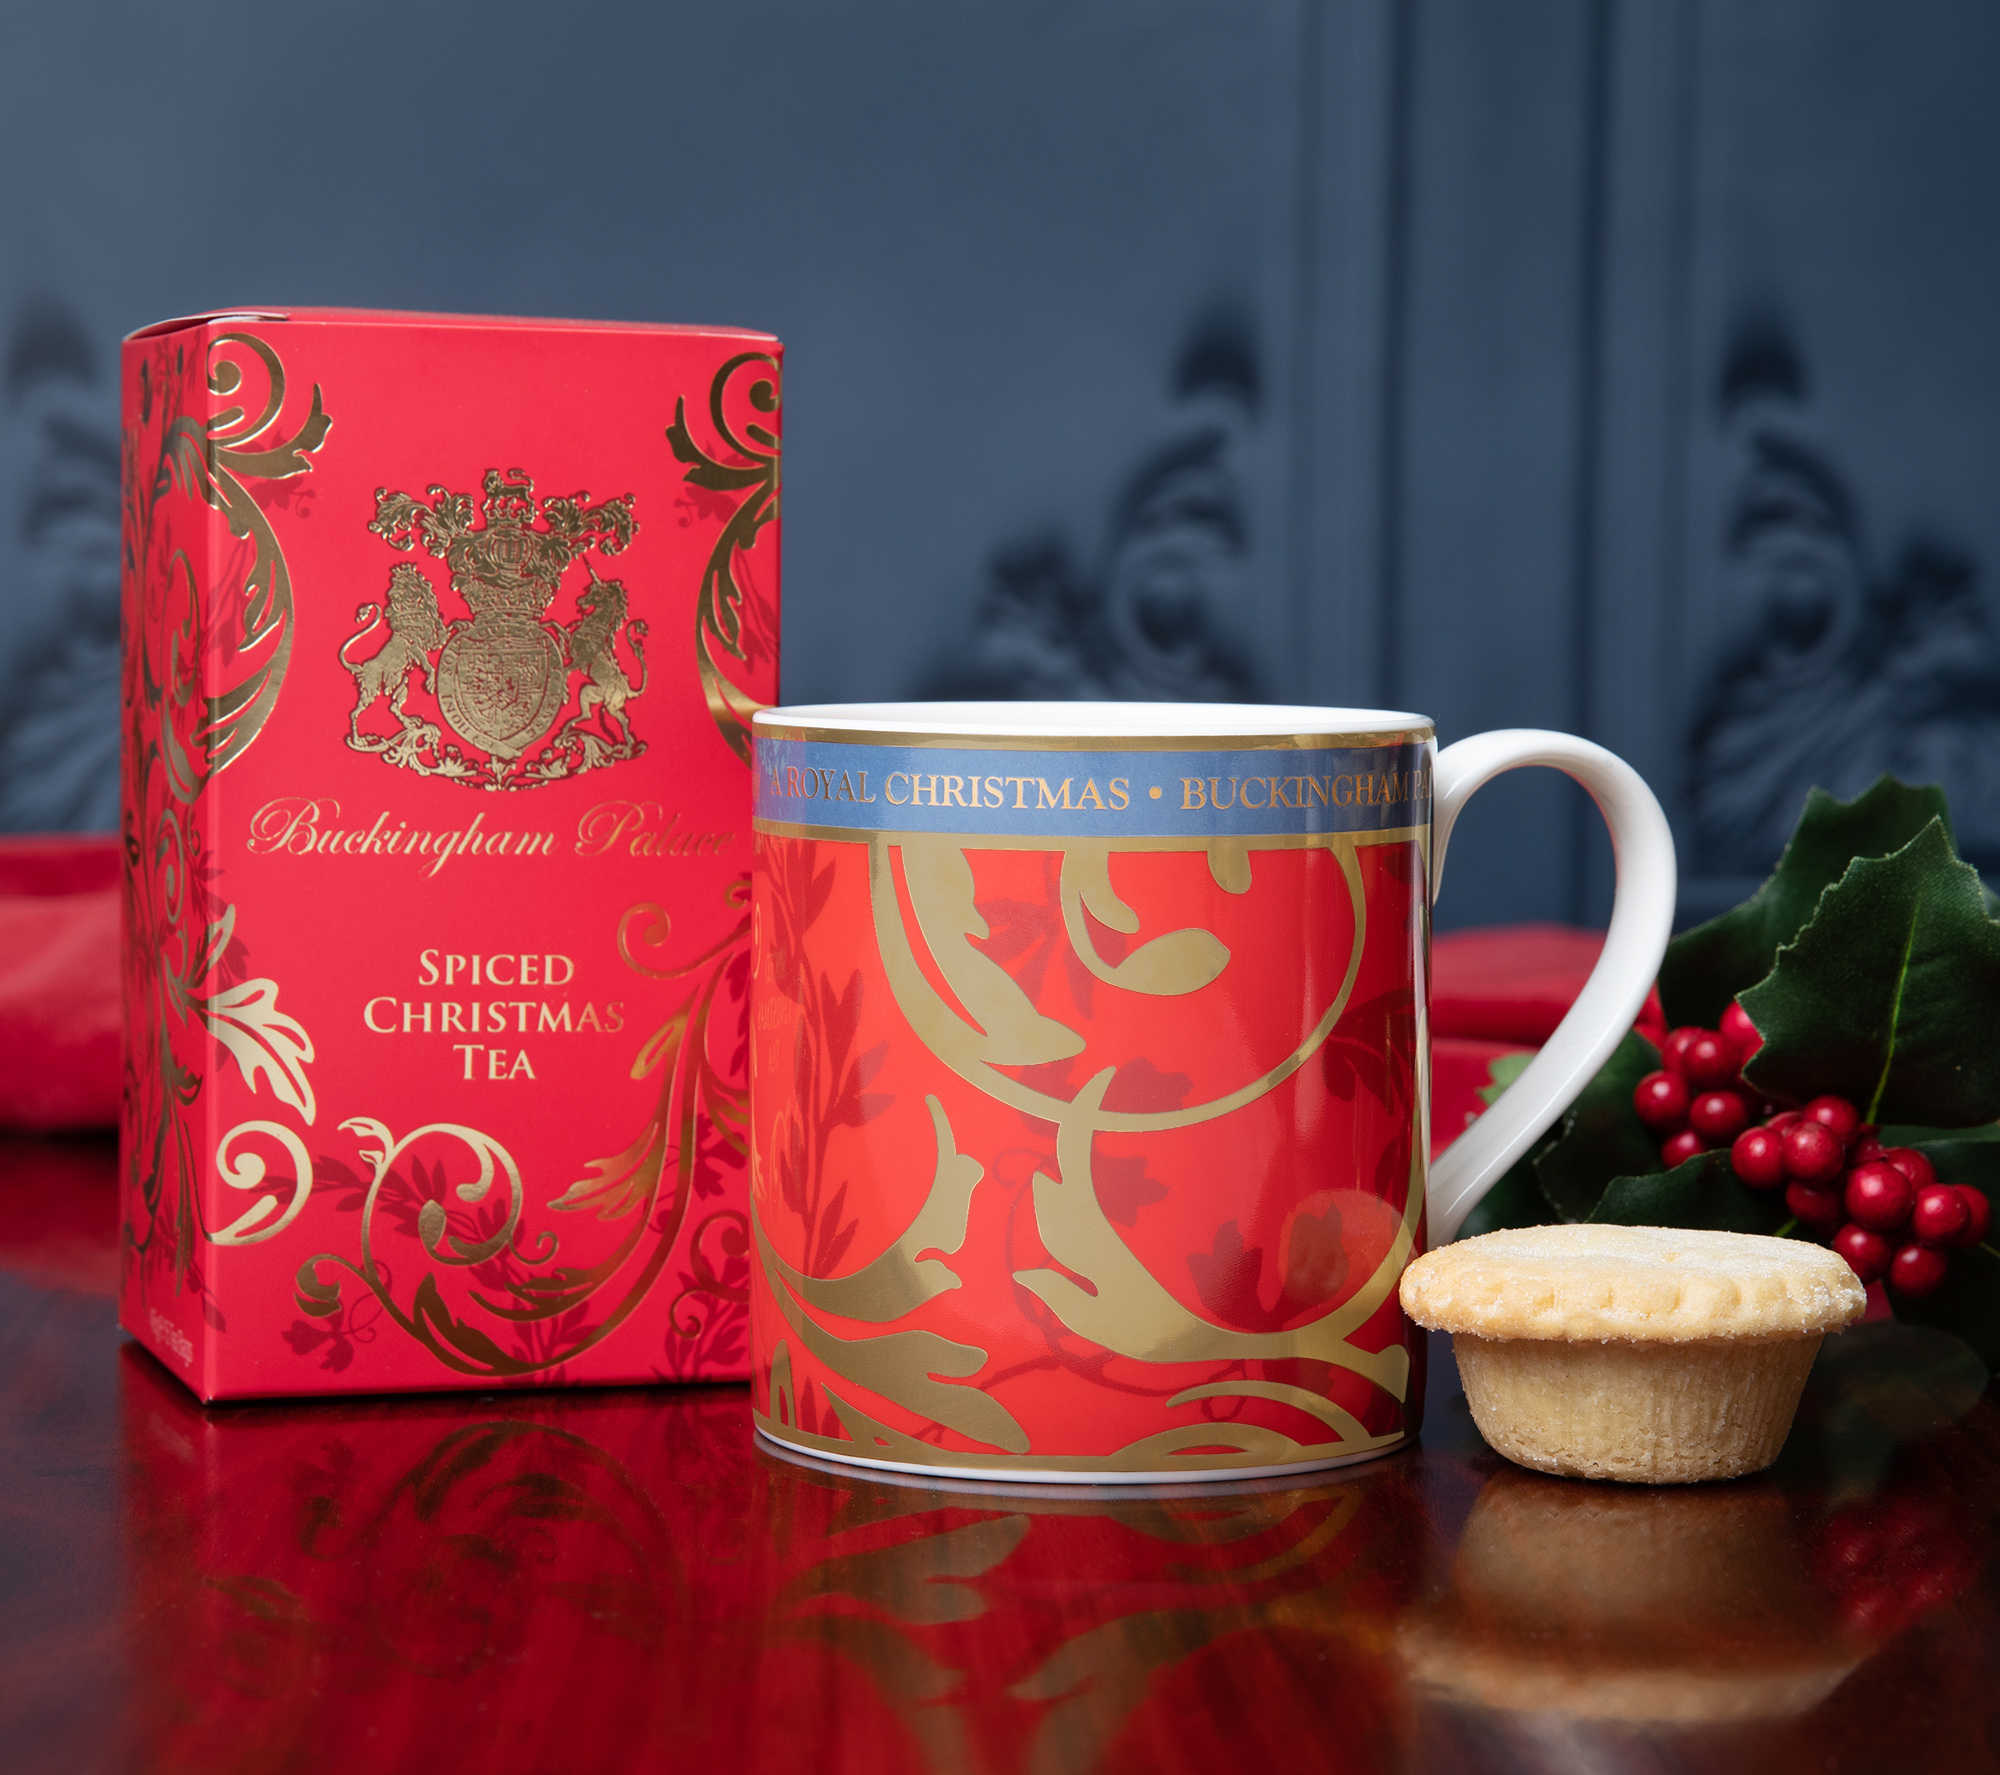 Mince pies and spiced tea with a sprig of holly